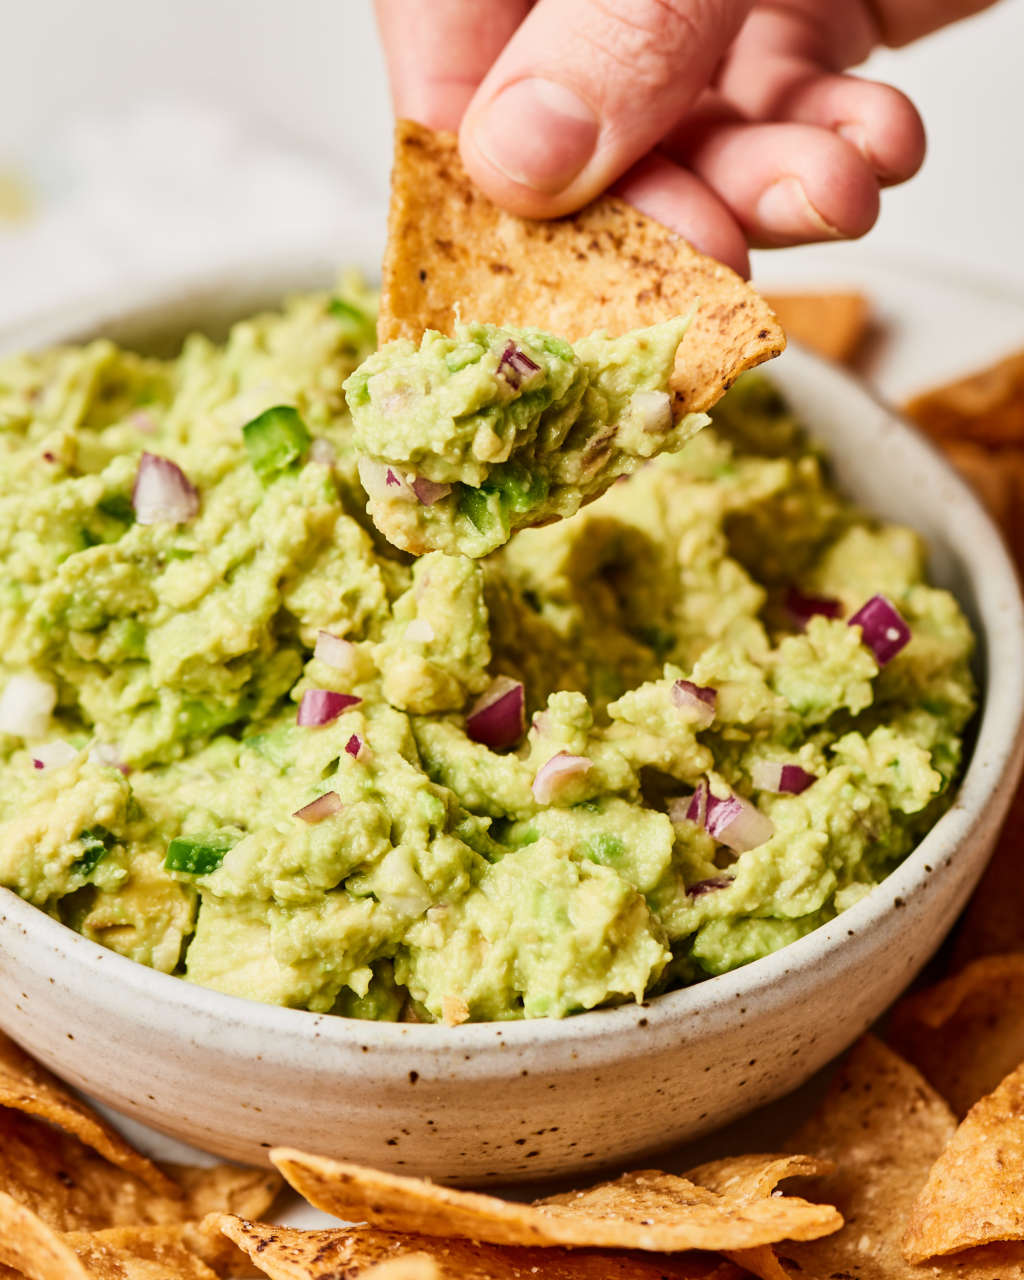 This Is the Secret to the Best-Ever Guacamole